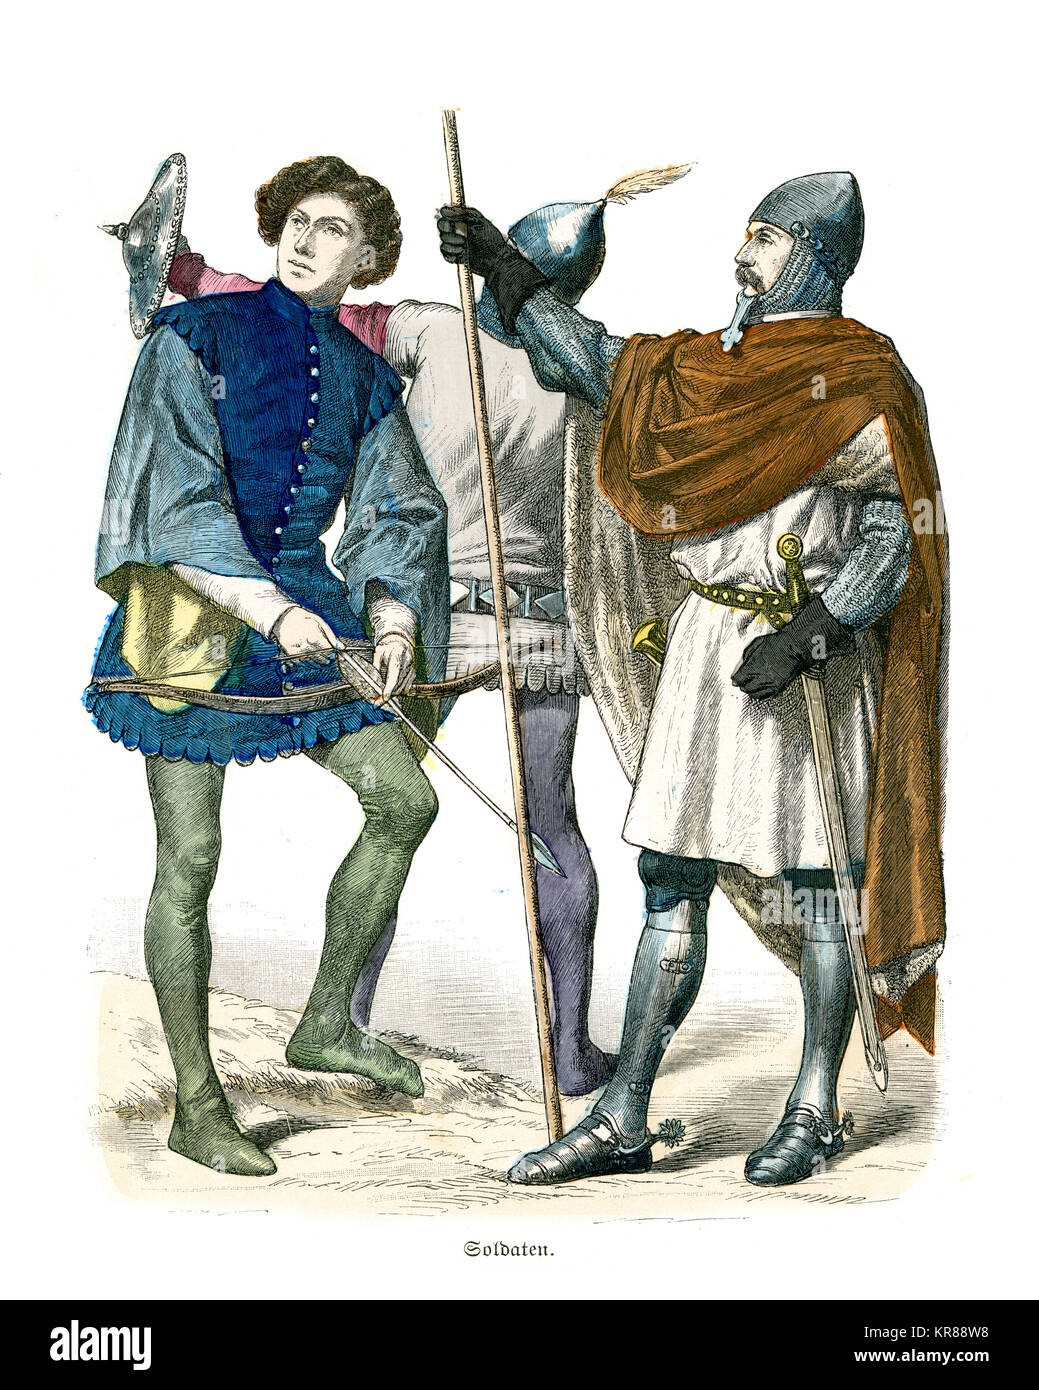 Vintage engraving of Soilders of of Medieval Italy, 14th Century. Knight in armour, archer and soldier with a Buckler - Stock Image